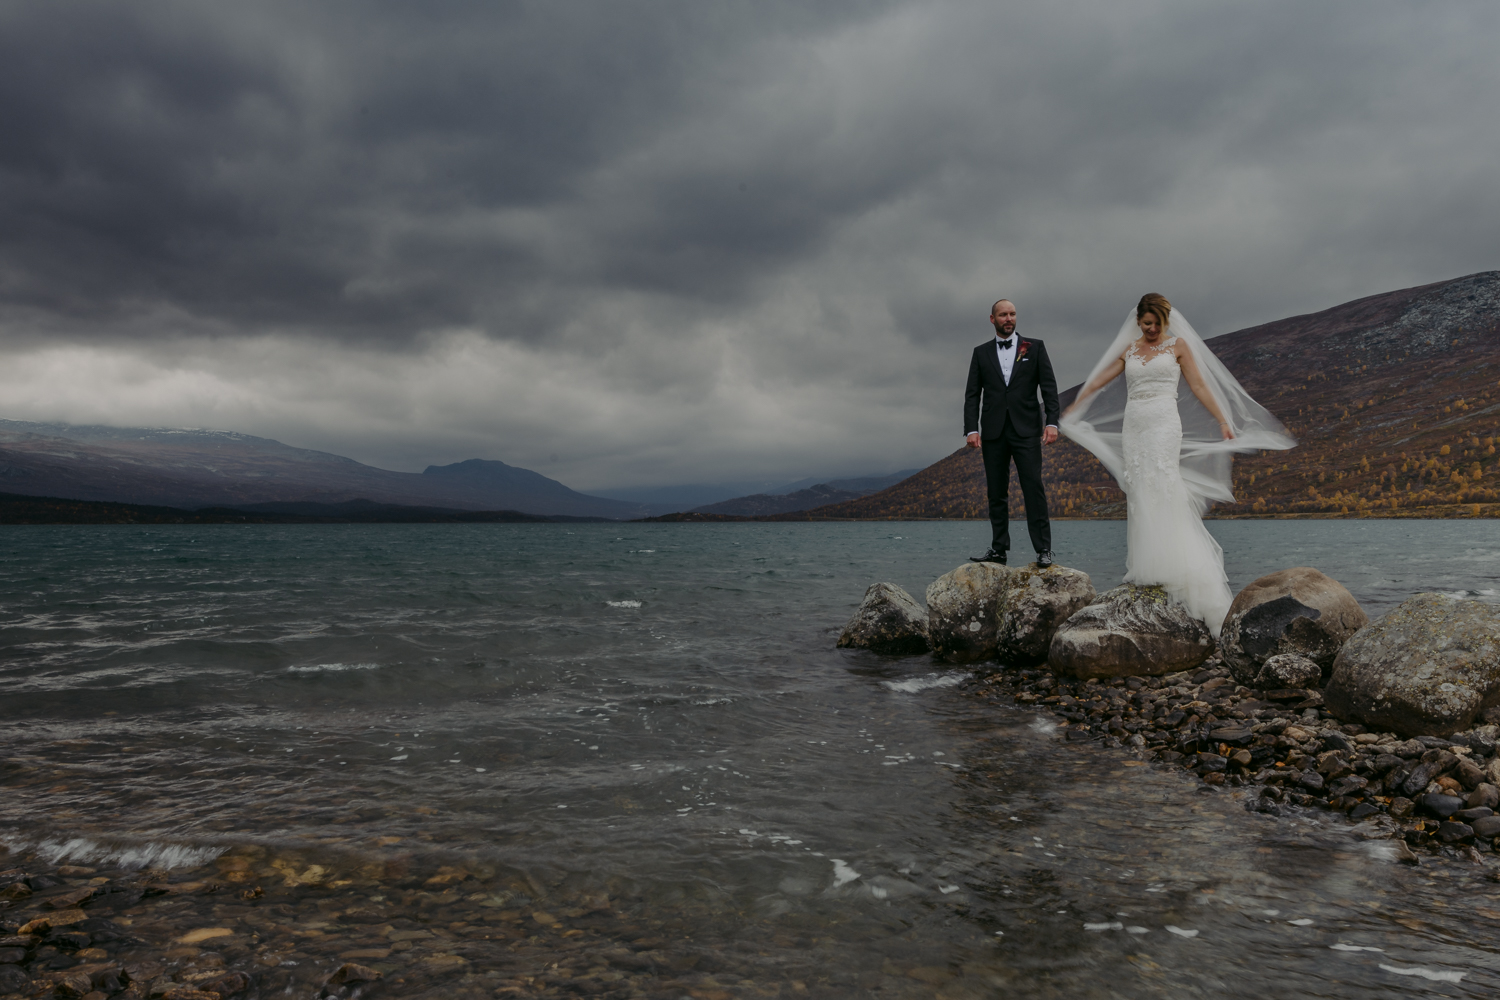 Norwegian wedding couple portrait near water